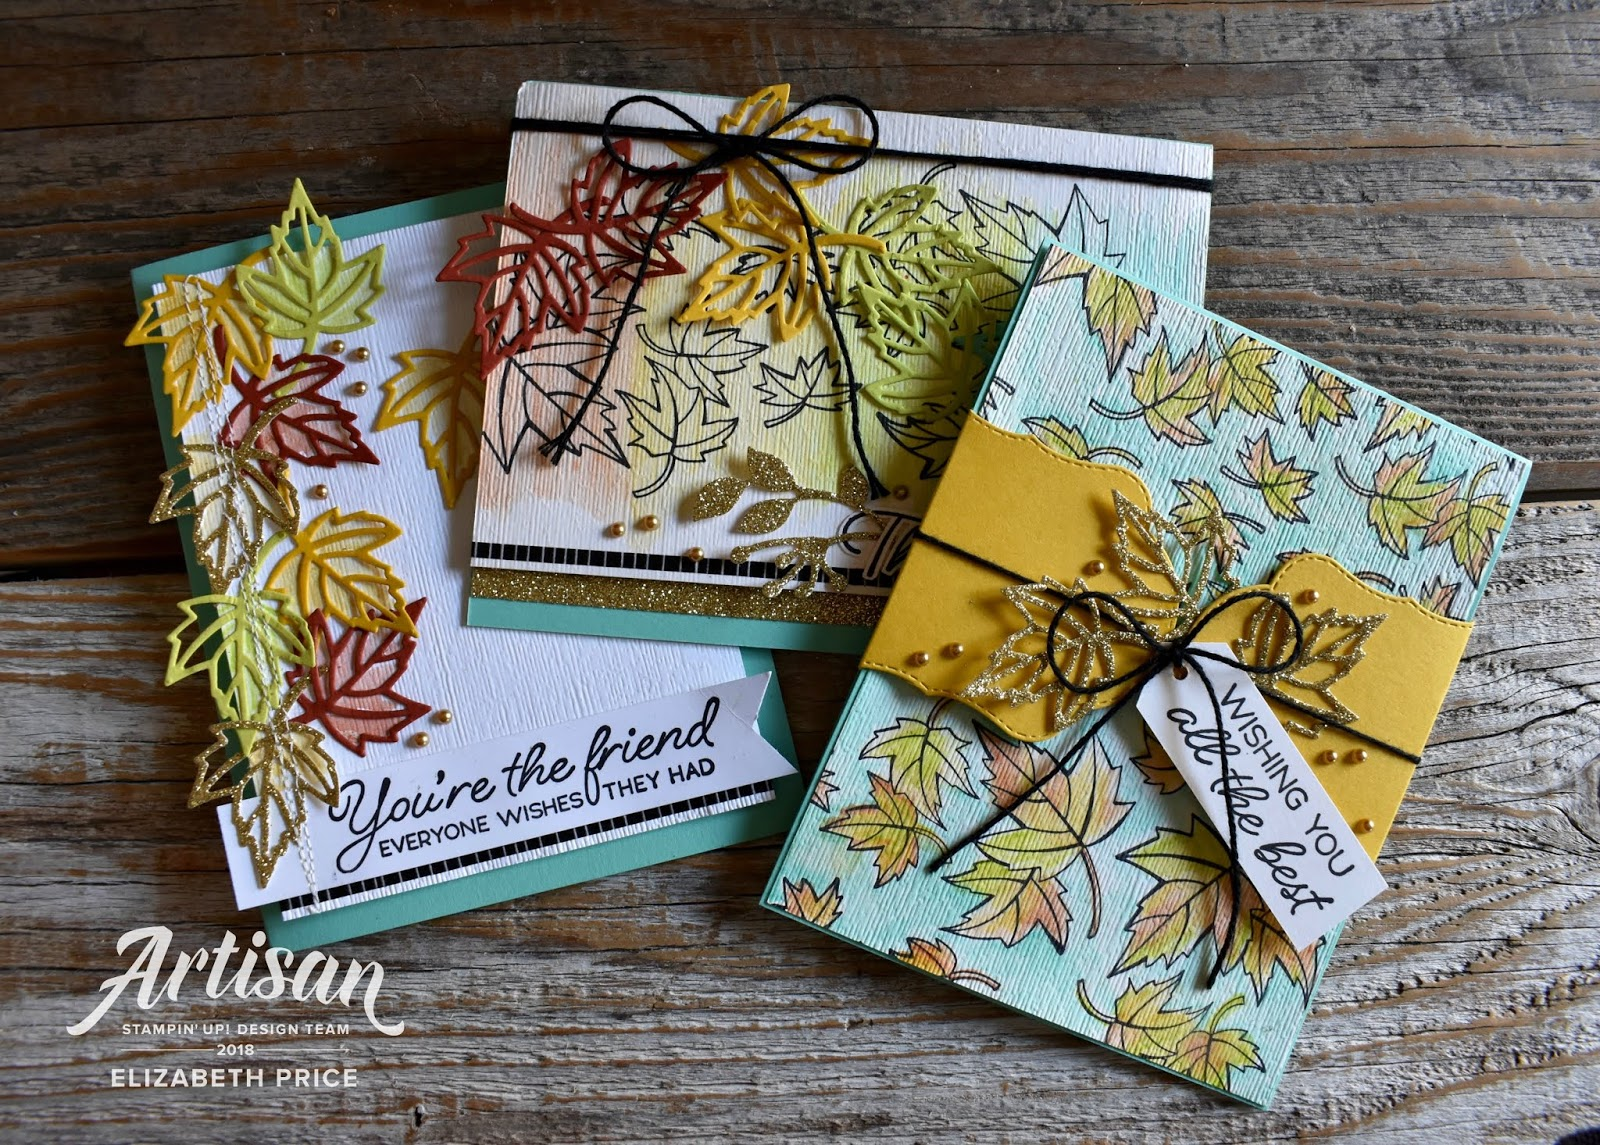 seeing ink spots blended seasons stampin up artisan blog hop